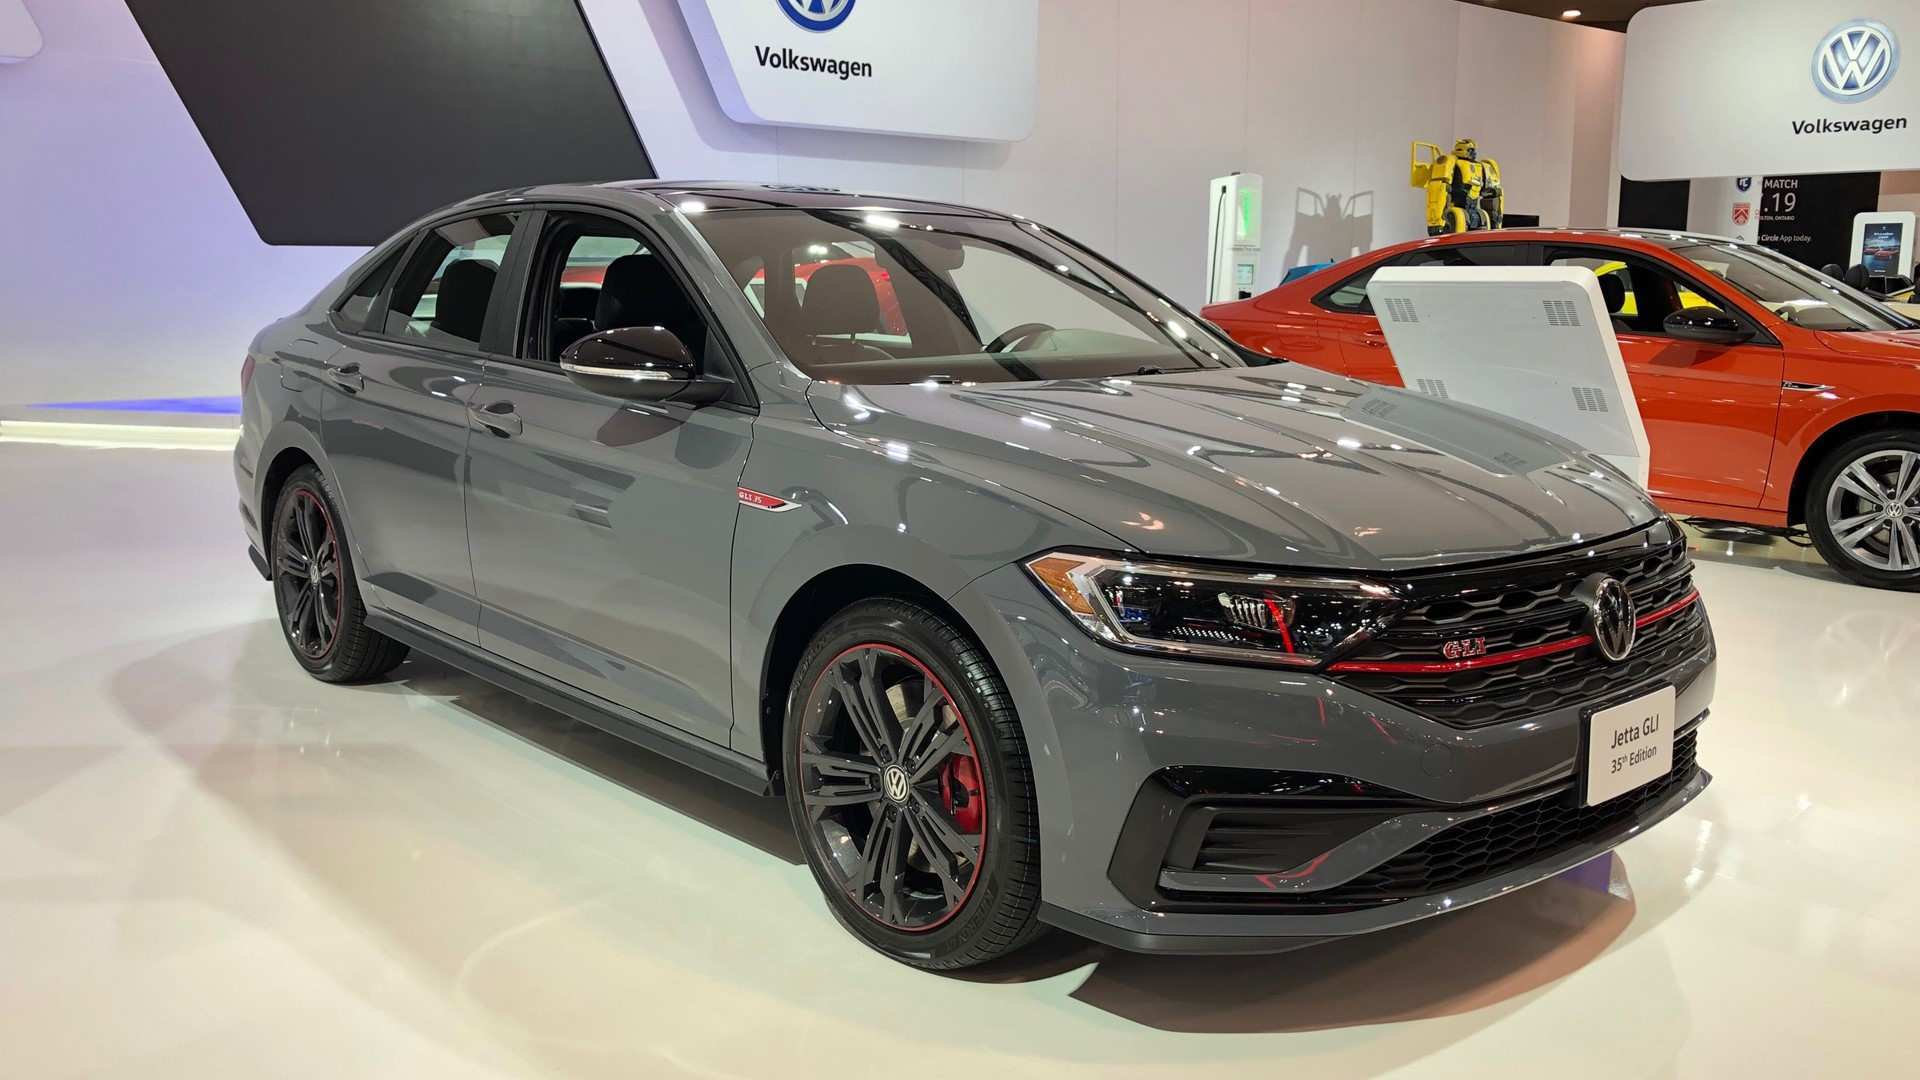 92 Great Vw Jetta 2019 Mexico Style by Vw Jetta 2019 Mexico